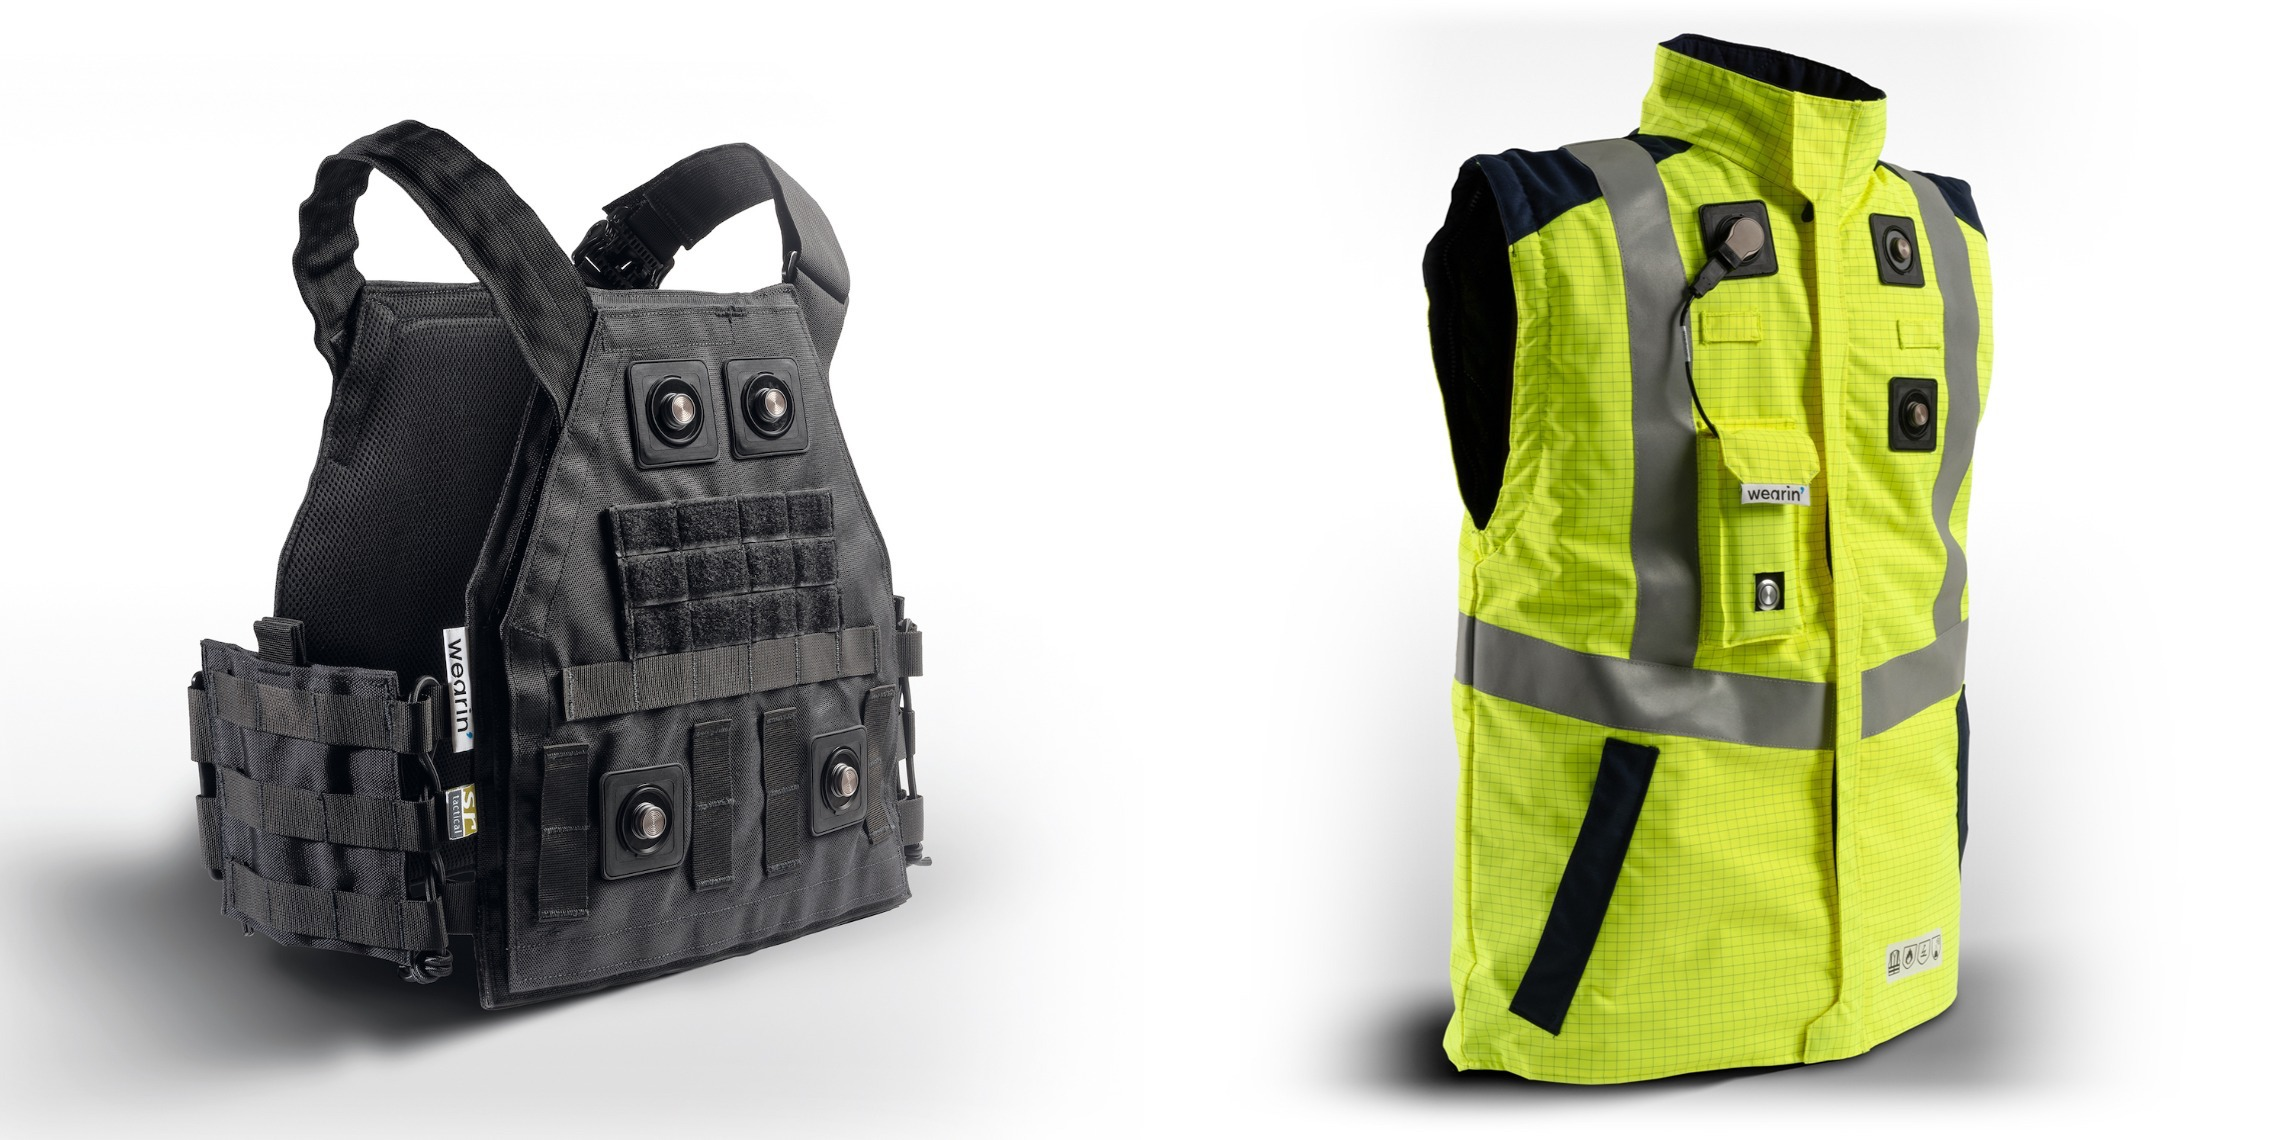 utility vests, technology trend = wearable connectivity